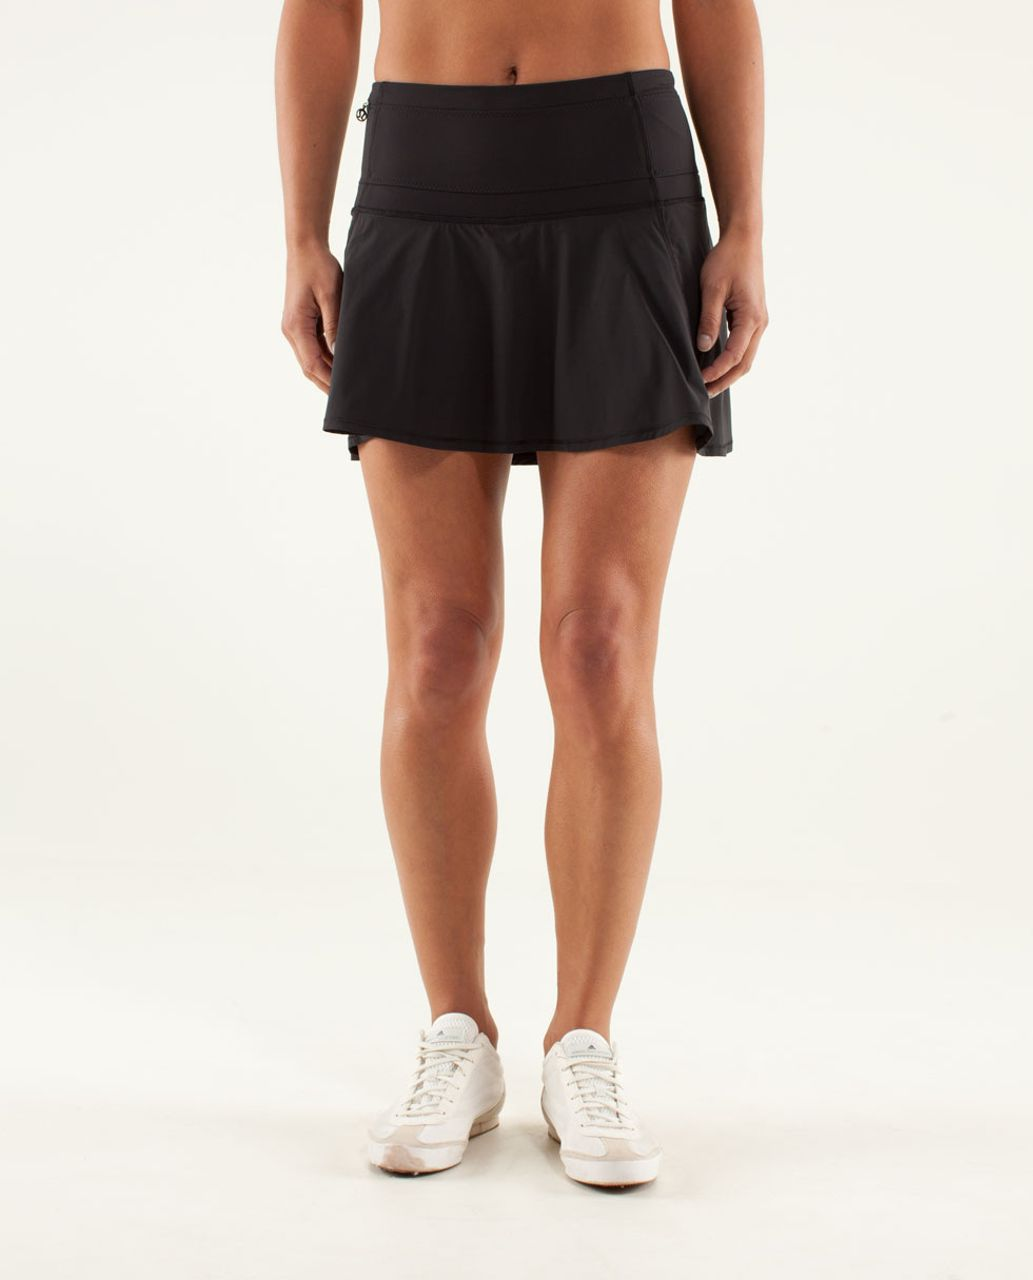 de04a24829 Lululemon Hot Hitter Skirt - Black - lulu fanatics